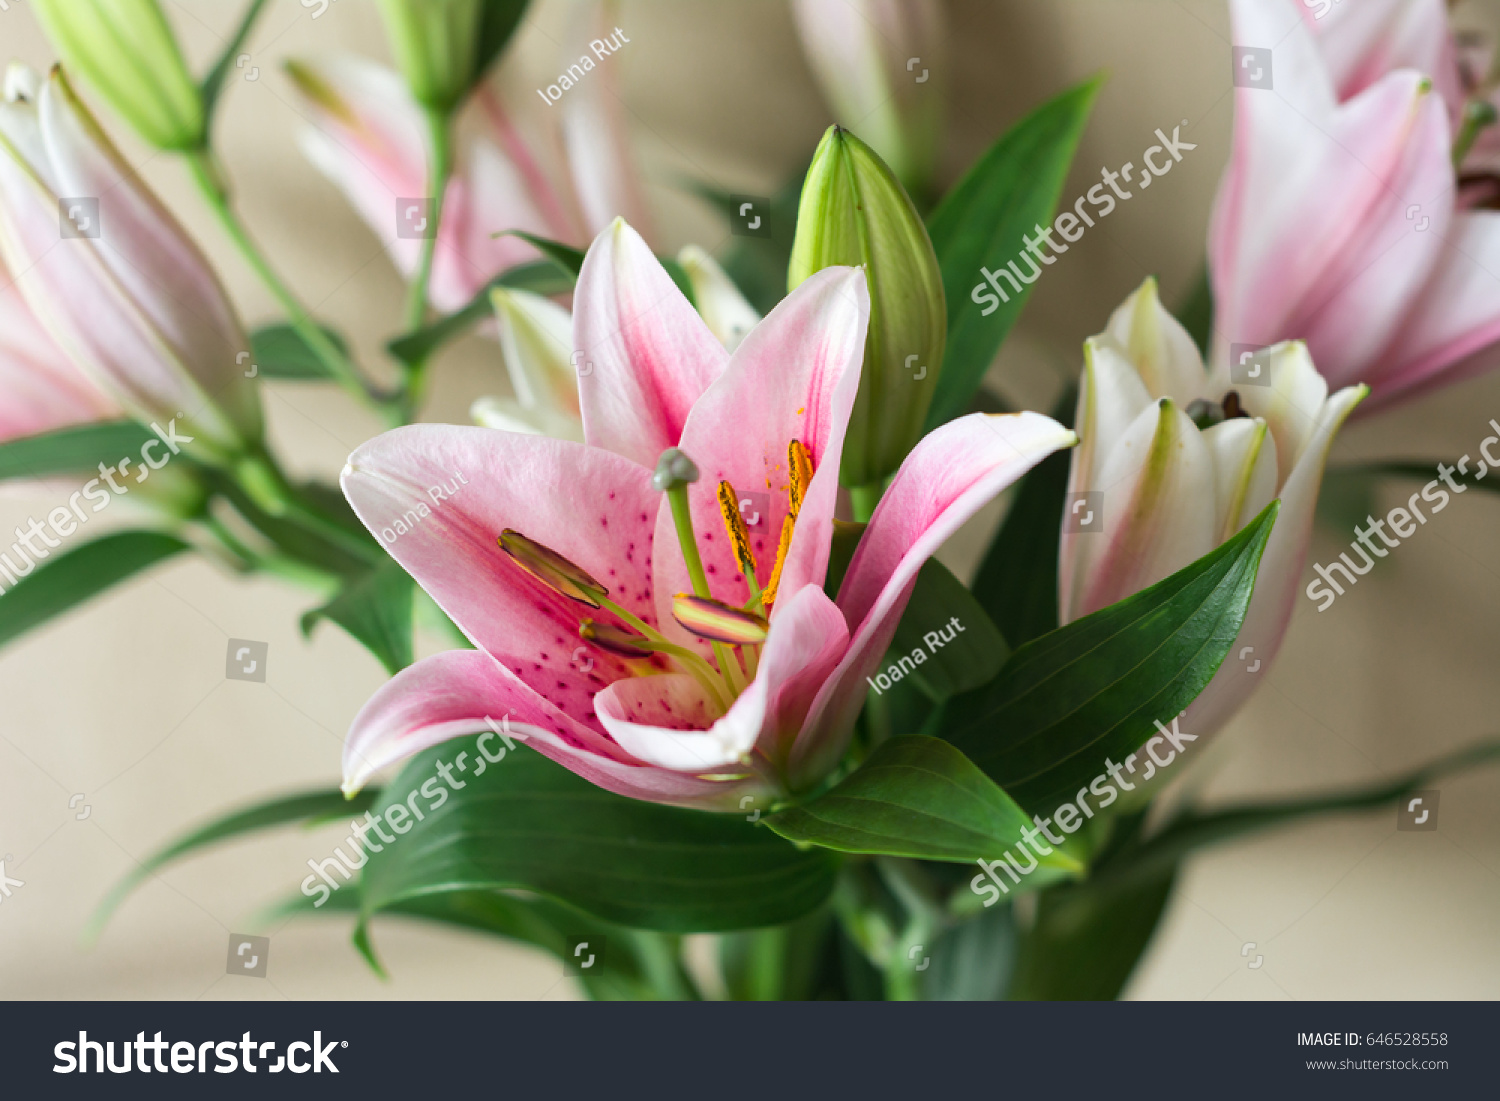 Beautiful lily flower on green background stock photo safe to use beautiful lily flower on green background with space for text perfect image for izmirmasajfo